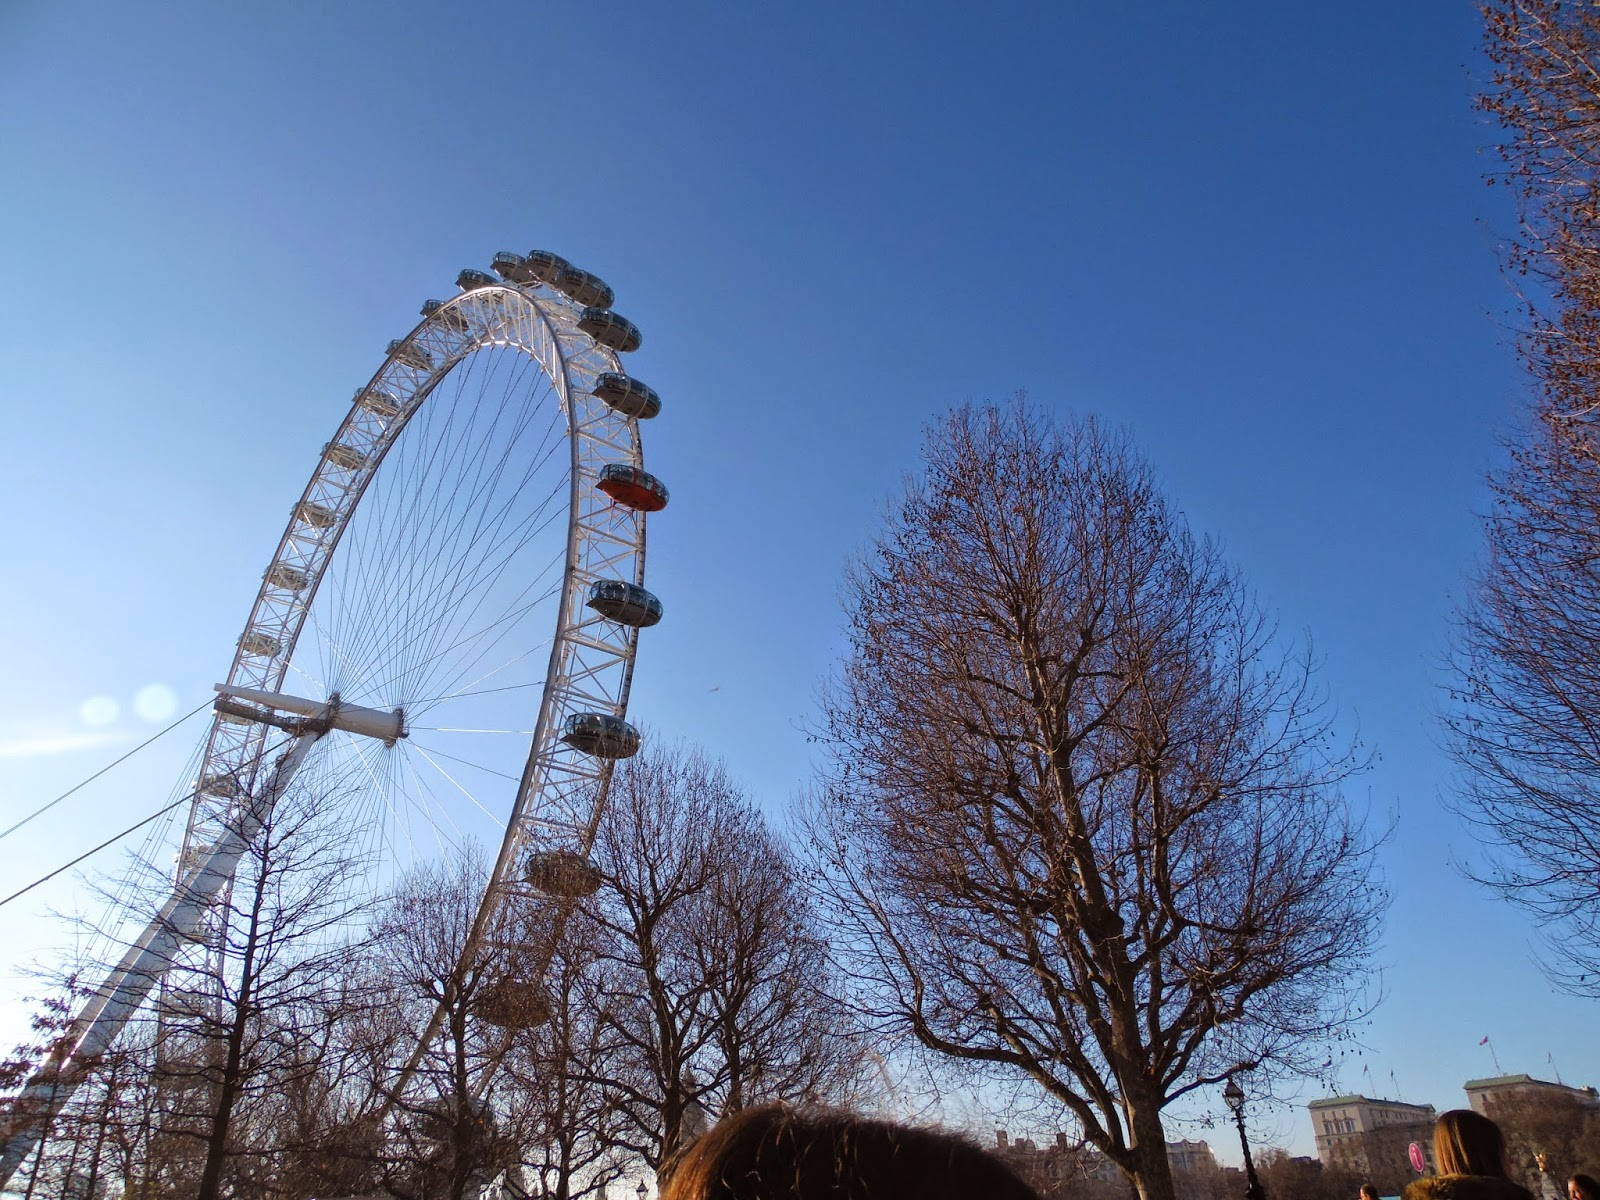 London Part 2 : Tourism and New Year's Eve